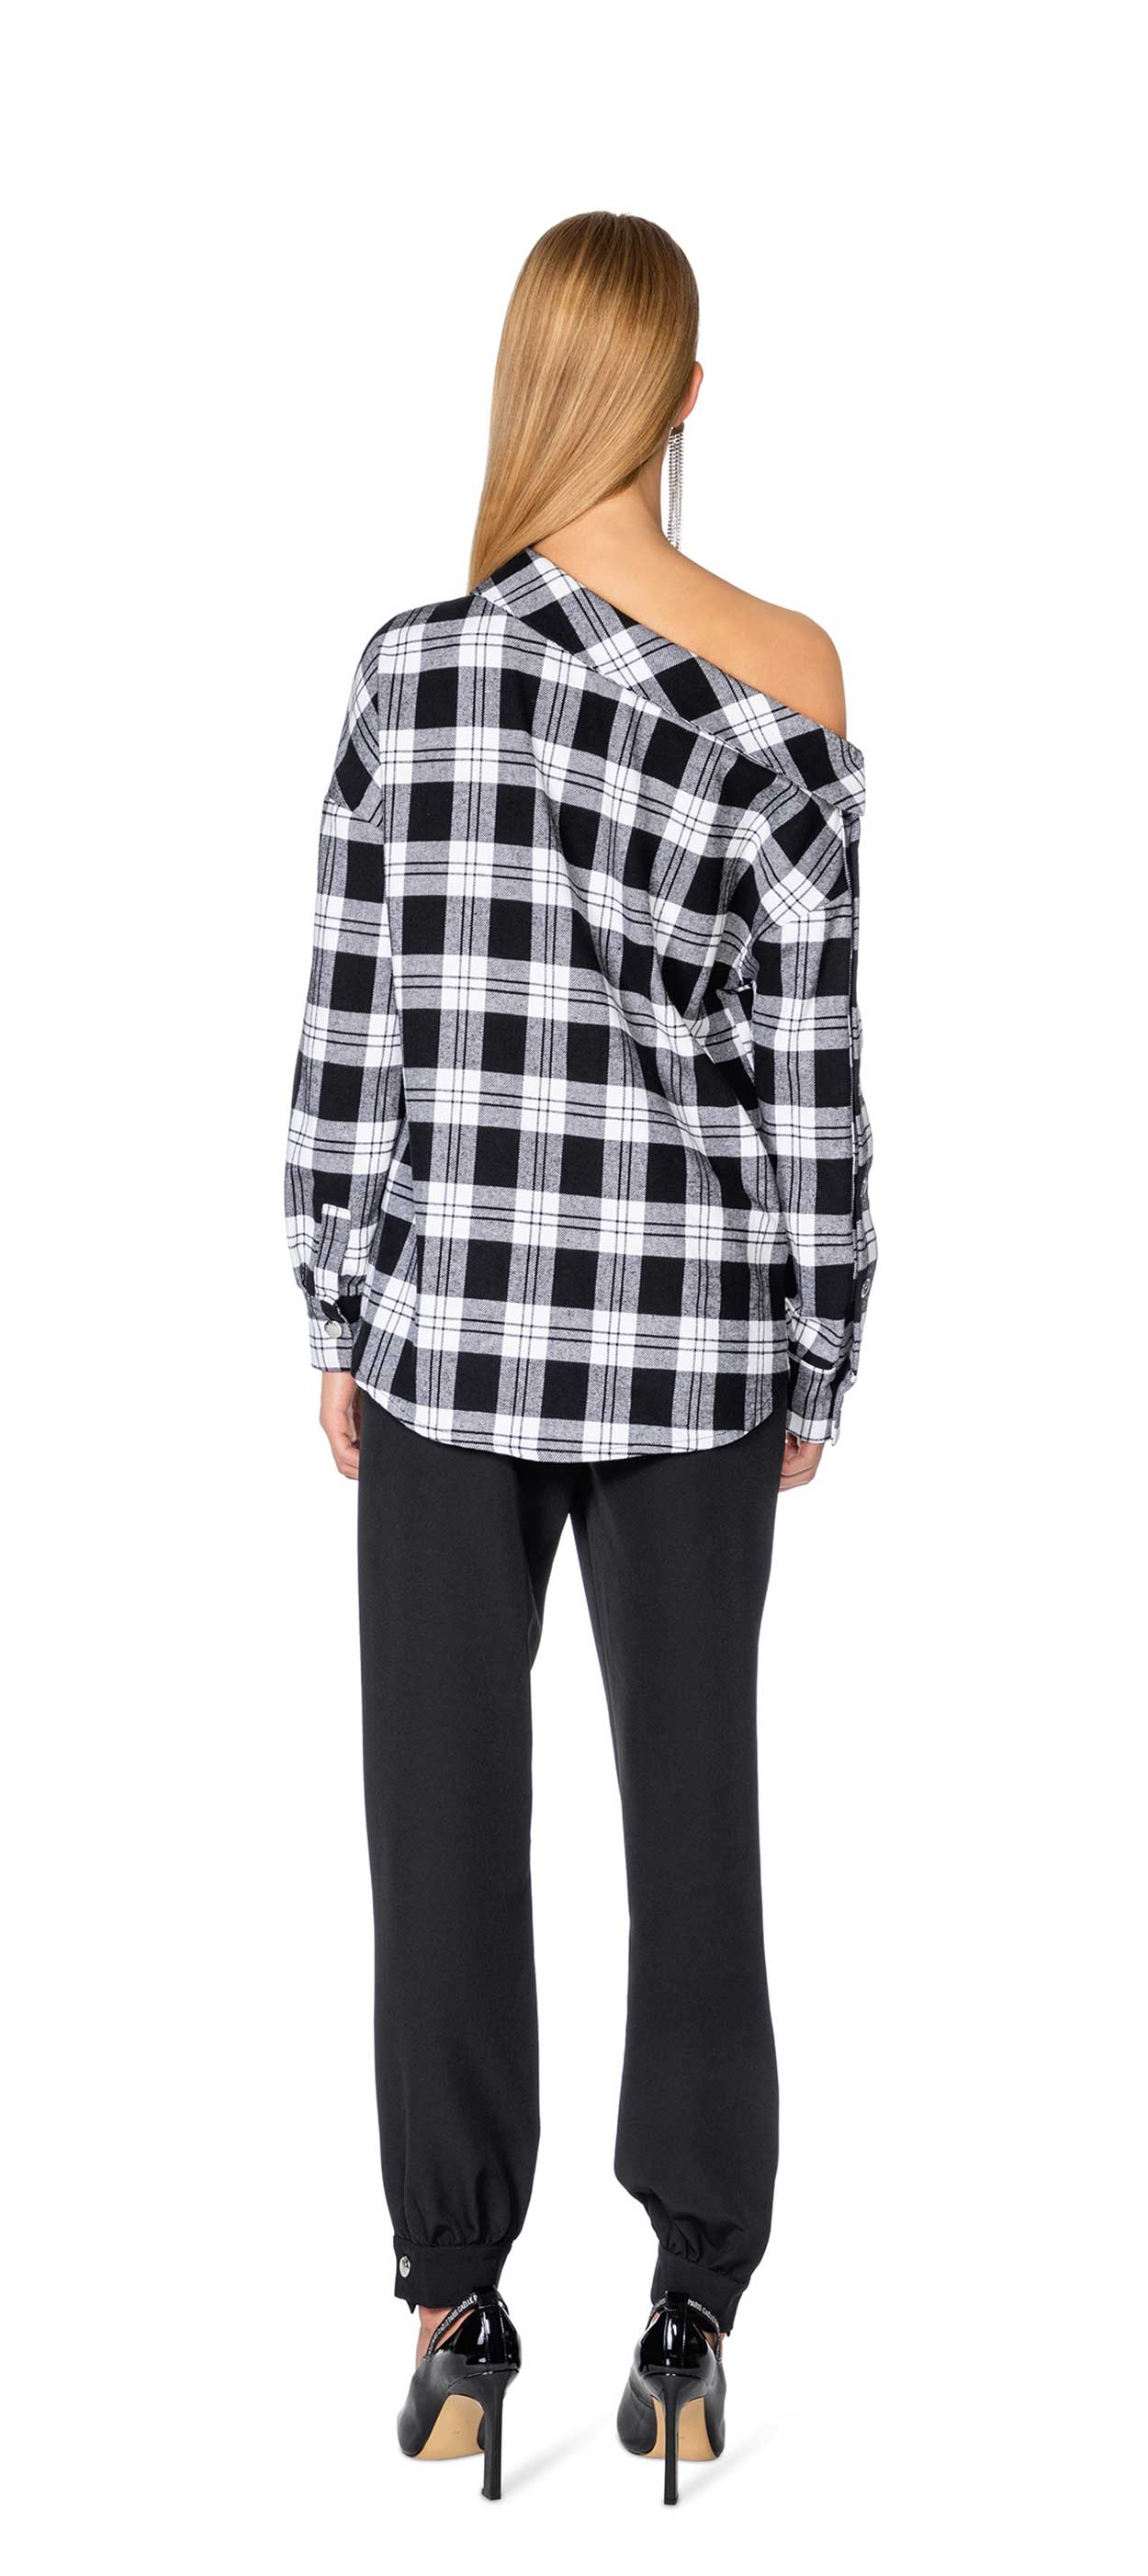 SHIRT - GBD7229 - GAELLE PARIS